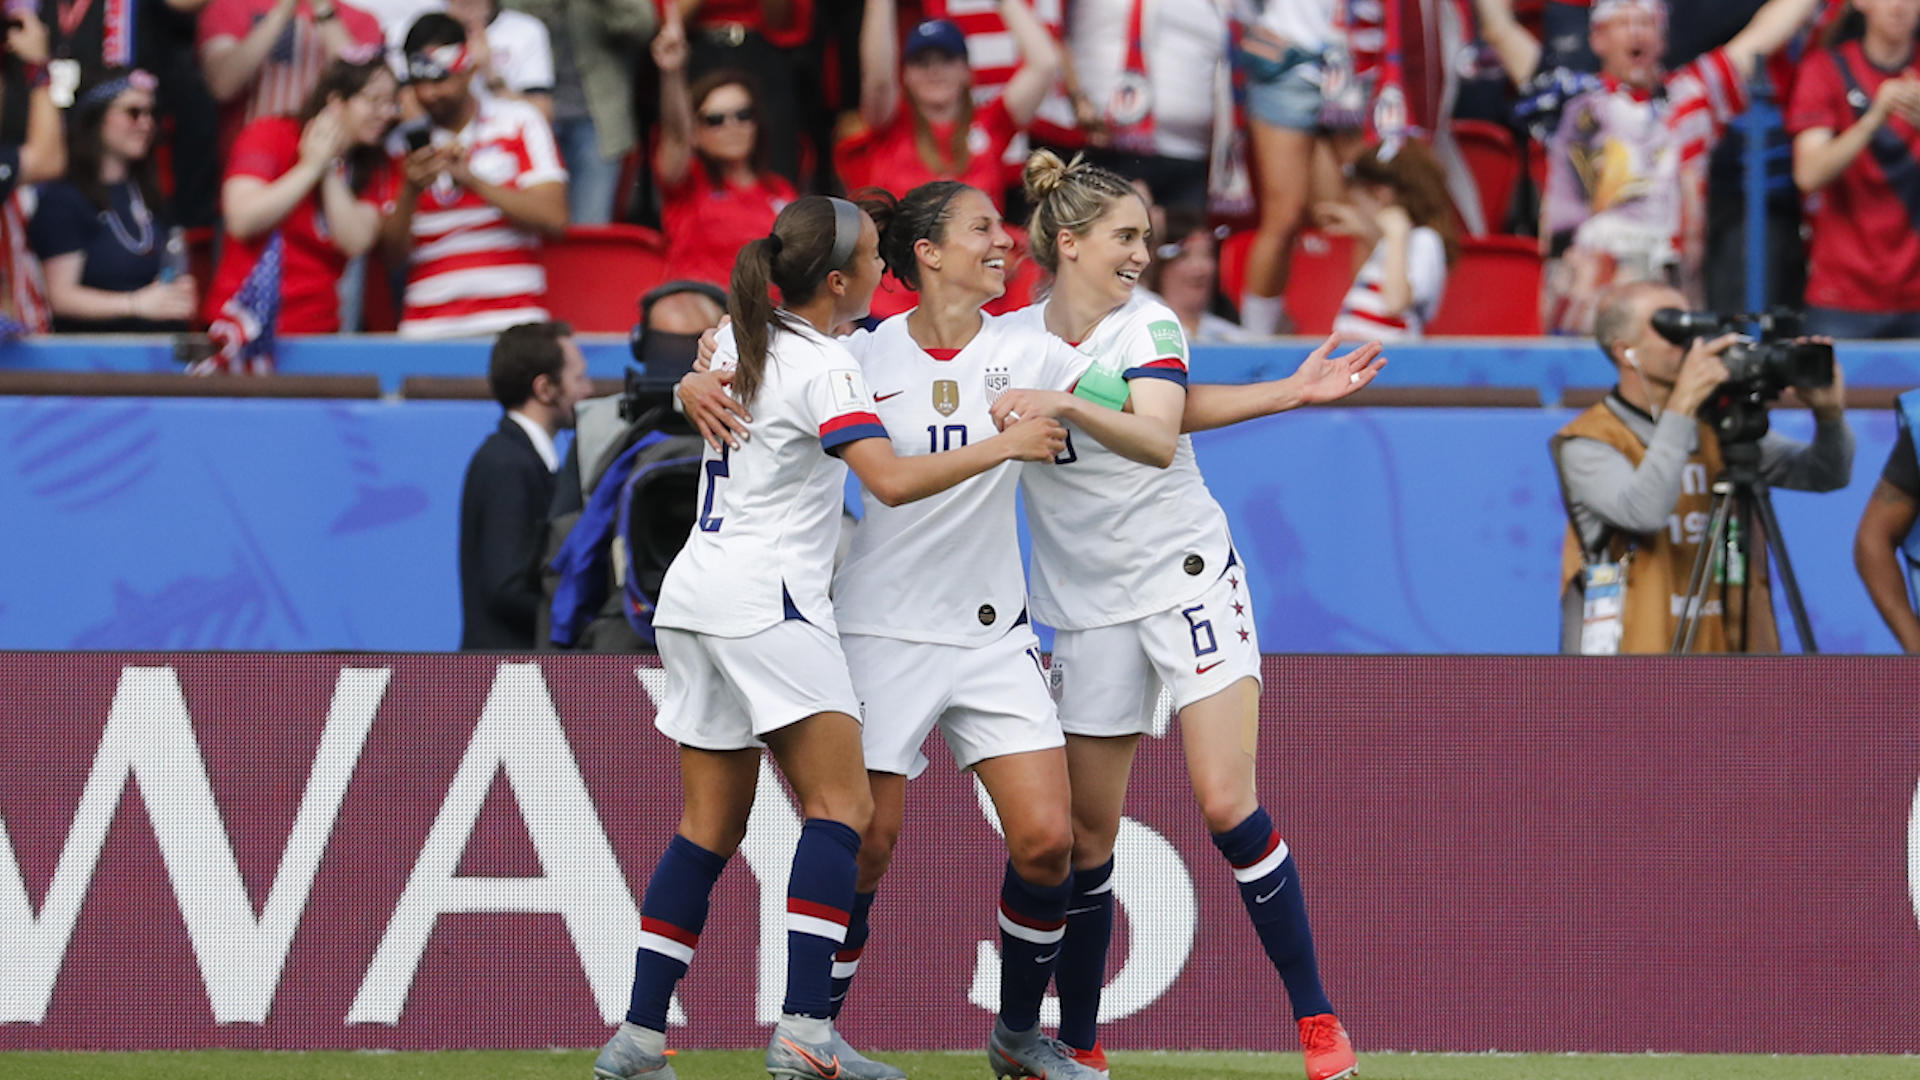 2019 Women's World Cup schedule, dates, bracket, watch on TV, live stream info, start times: USWNT makes knockout stage